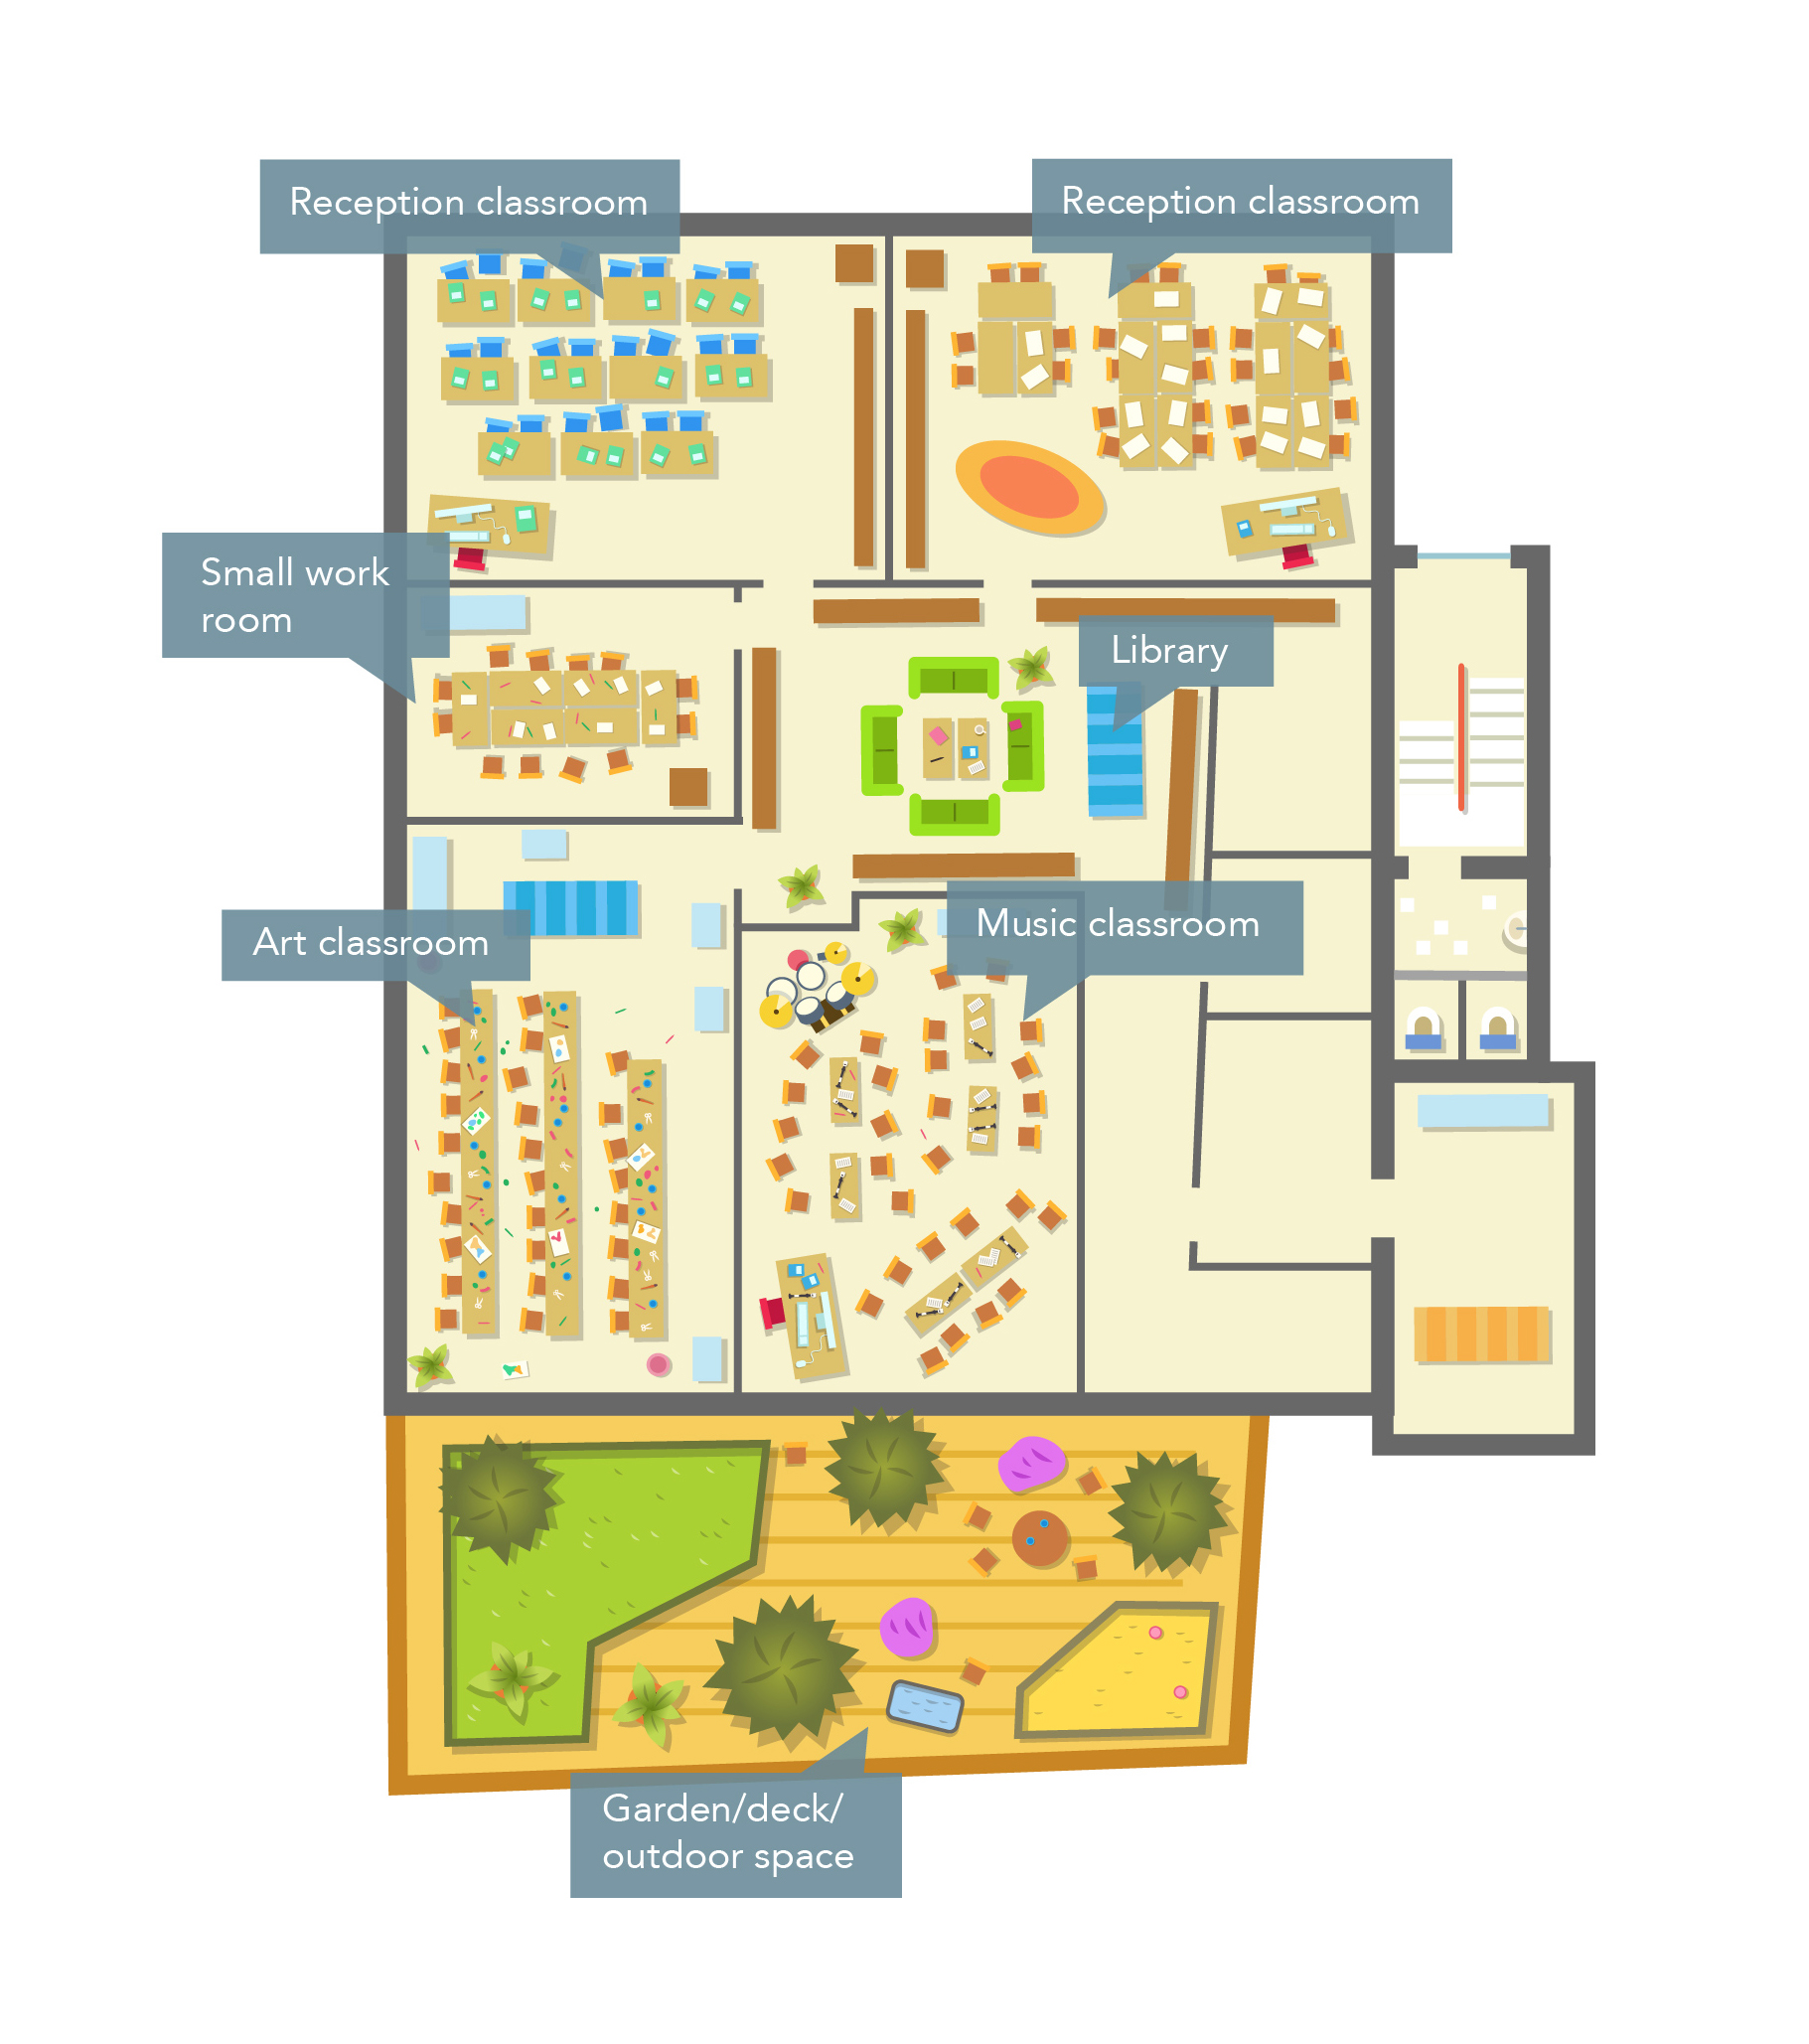 Classroom Layouts ~ School location and classroom layout hackney new primary